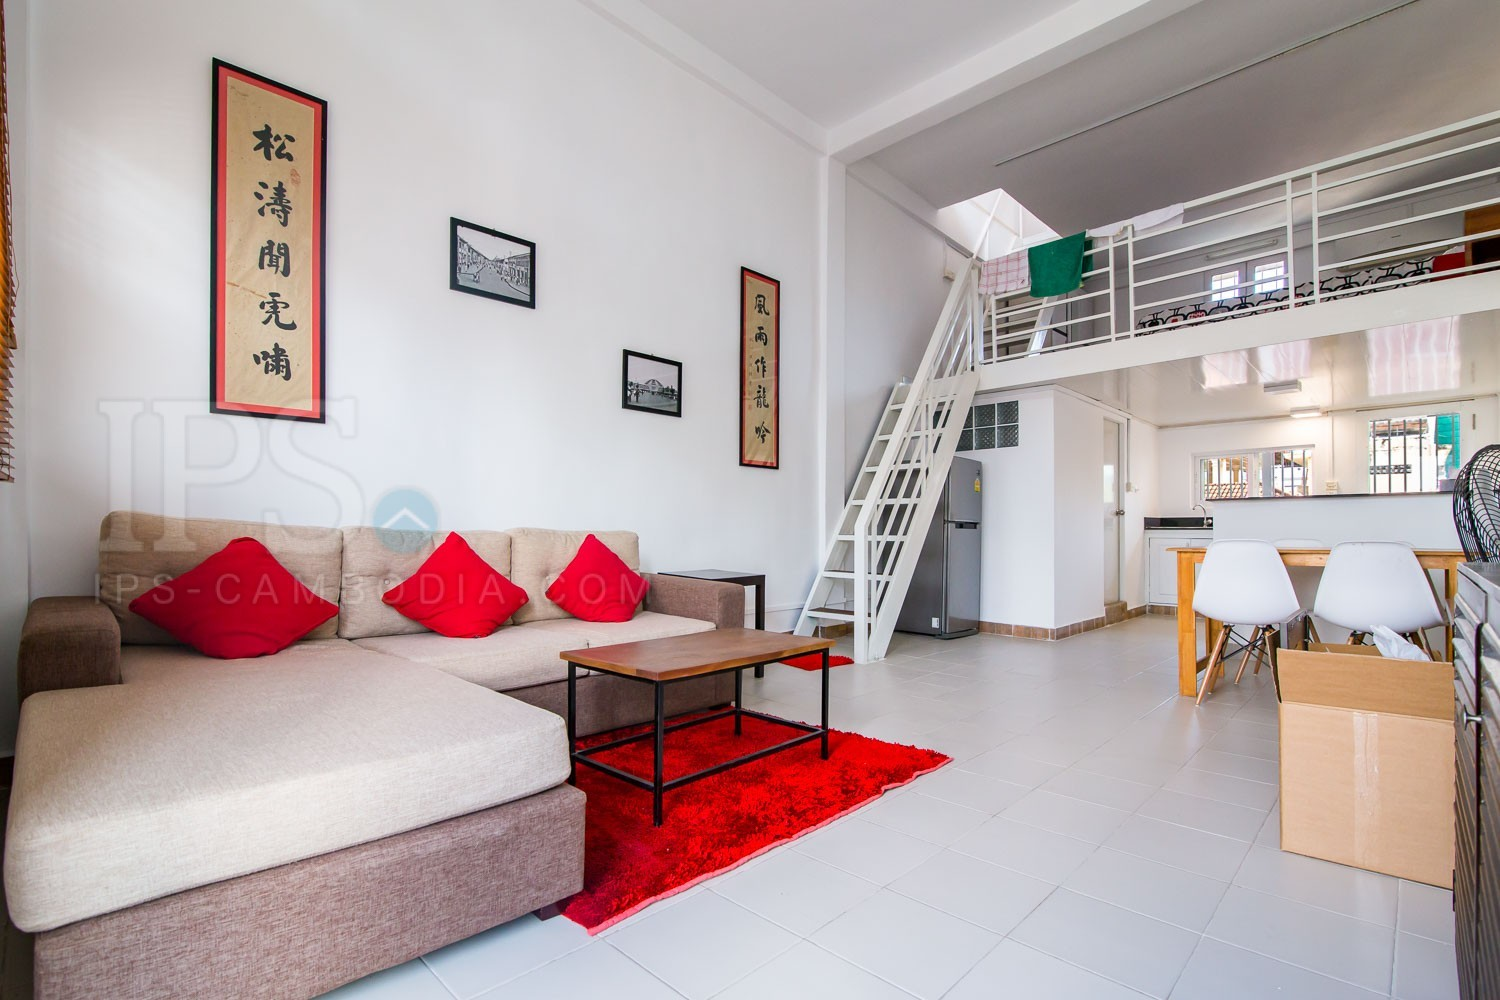 2 Bedroom Apartment For Sale - Daun Penh, Phnom Penh